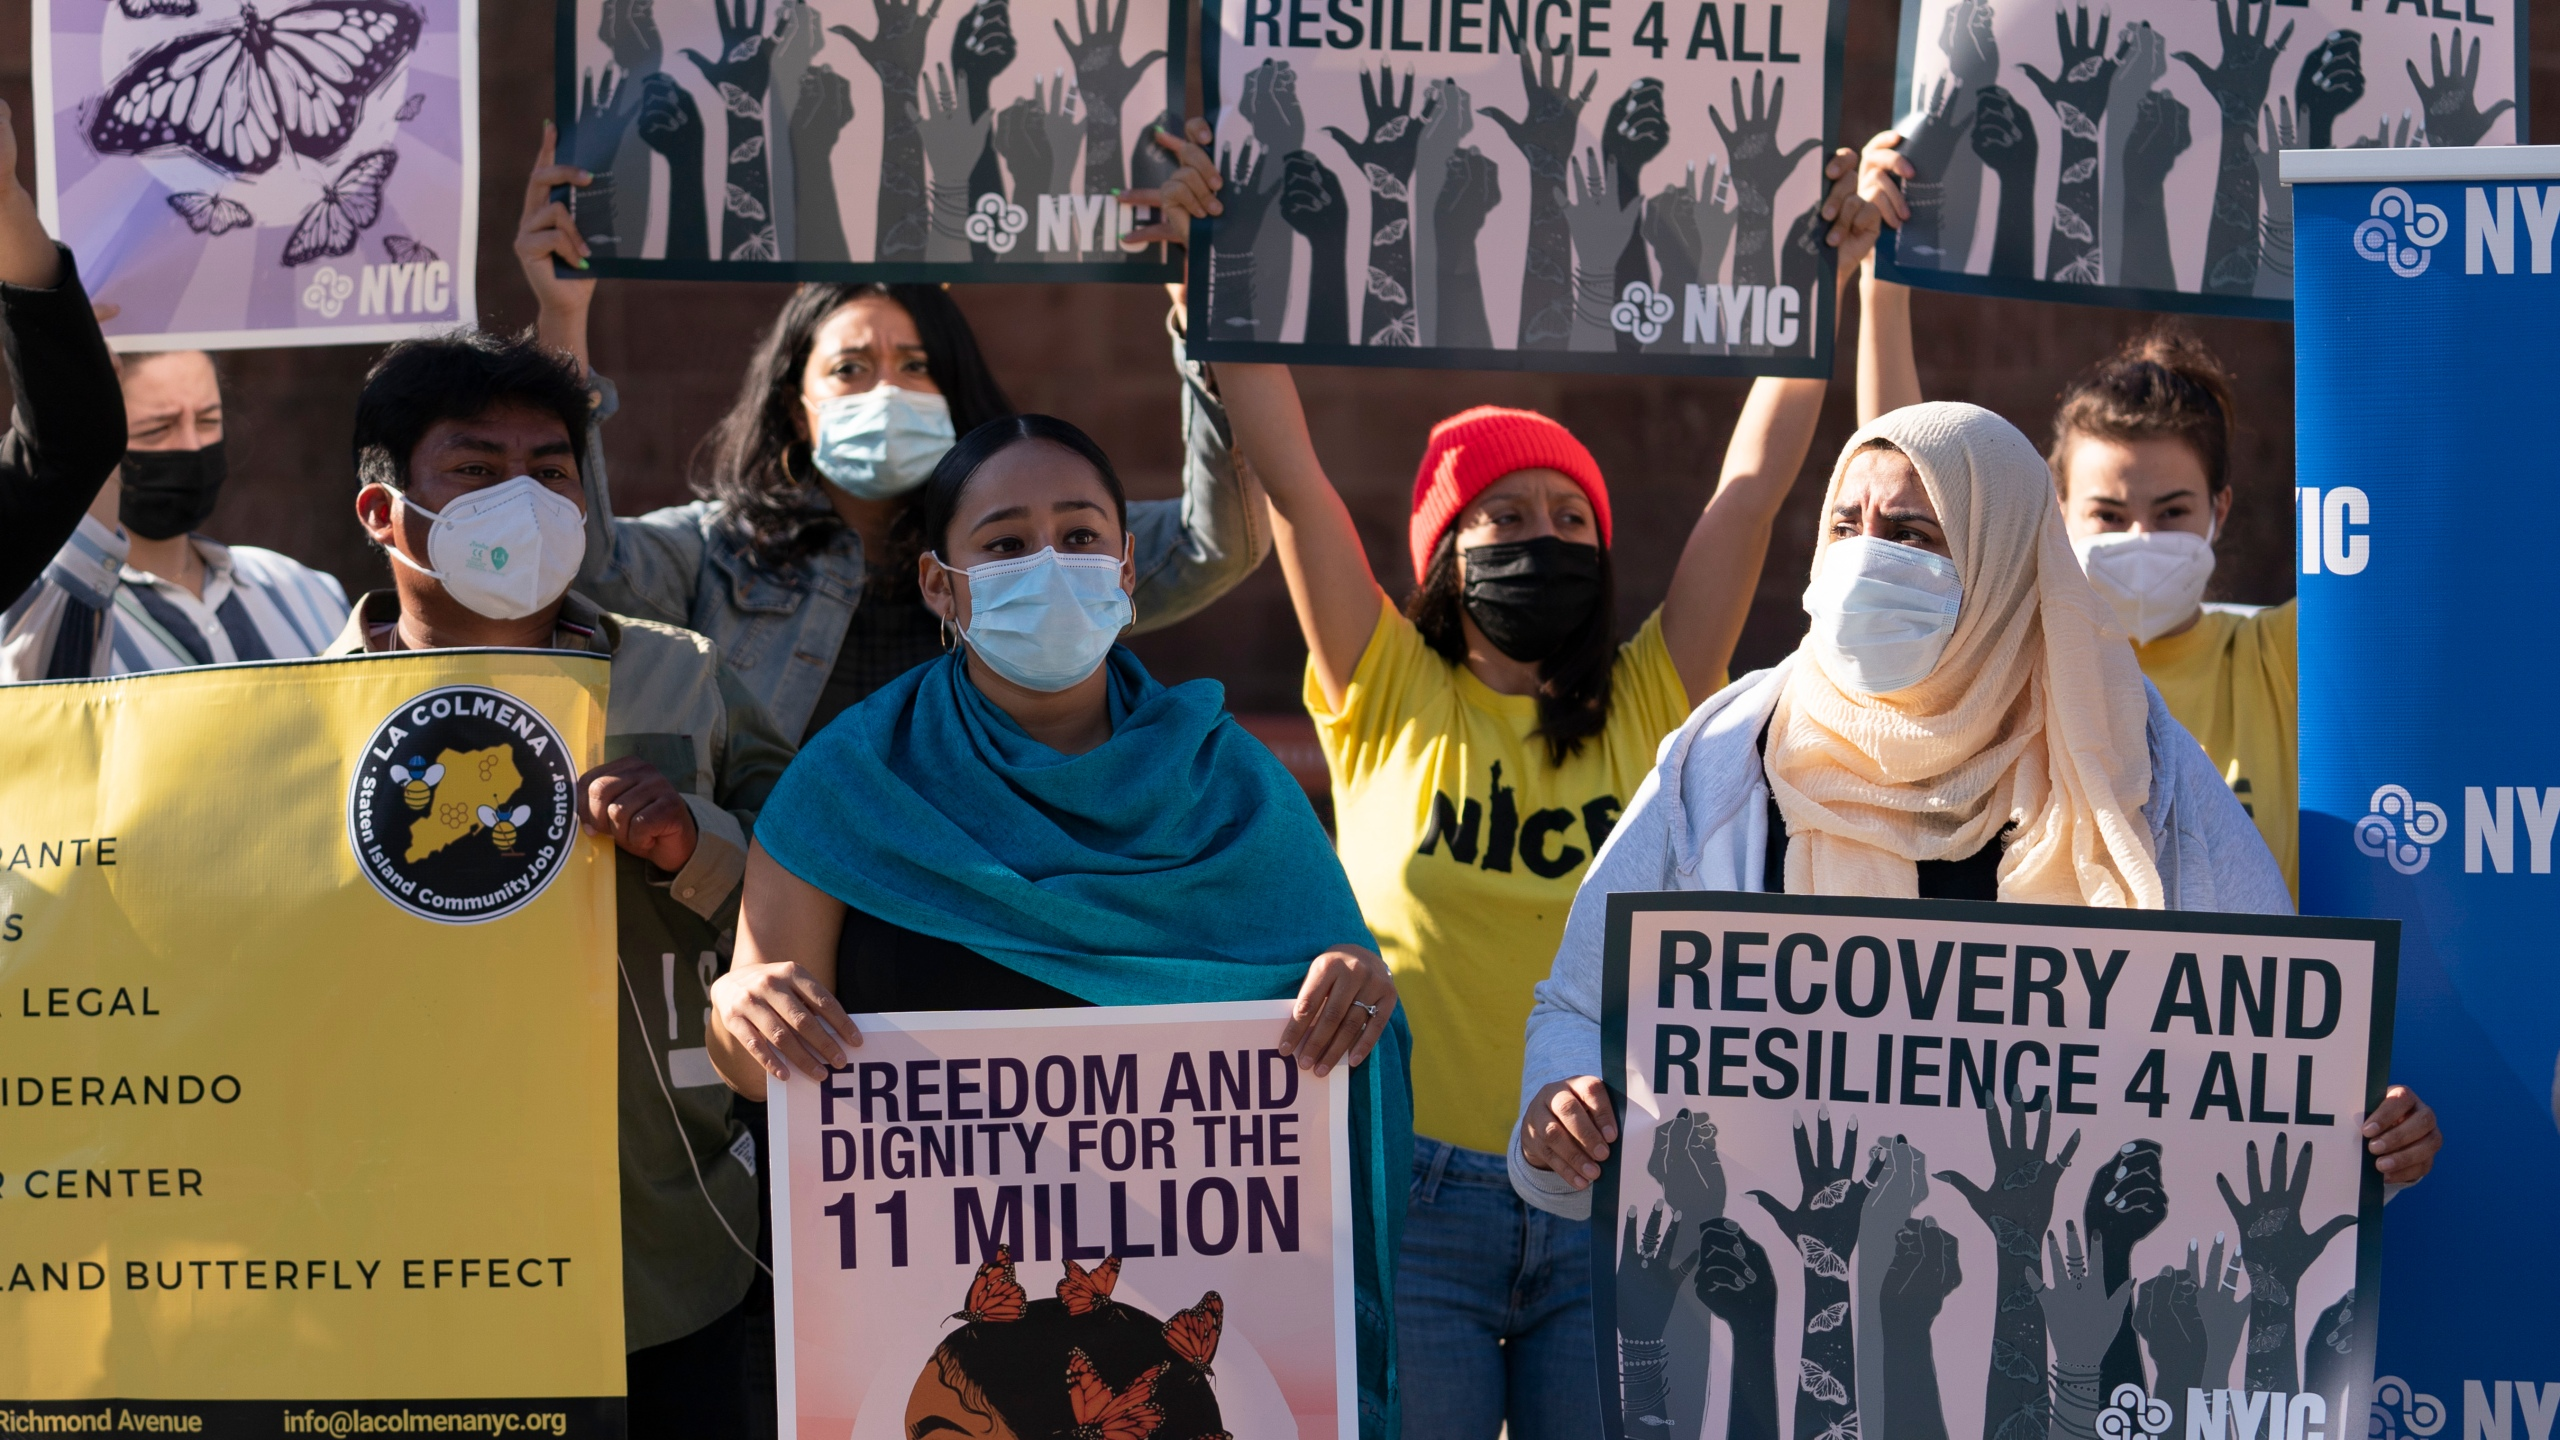 Demonstrators with the New York Immigration Coalition rally asking President-elect Joe Biden to prioritize immigration reform, Monday, Nov. 9, 2020, in New York. (AP Photo/Mark Lennihan)